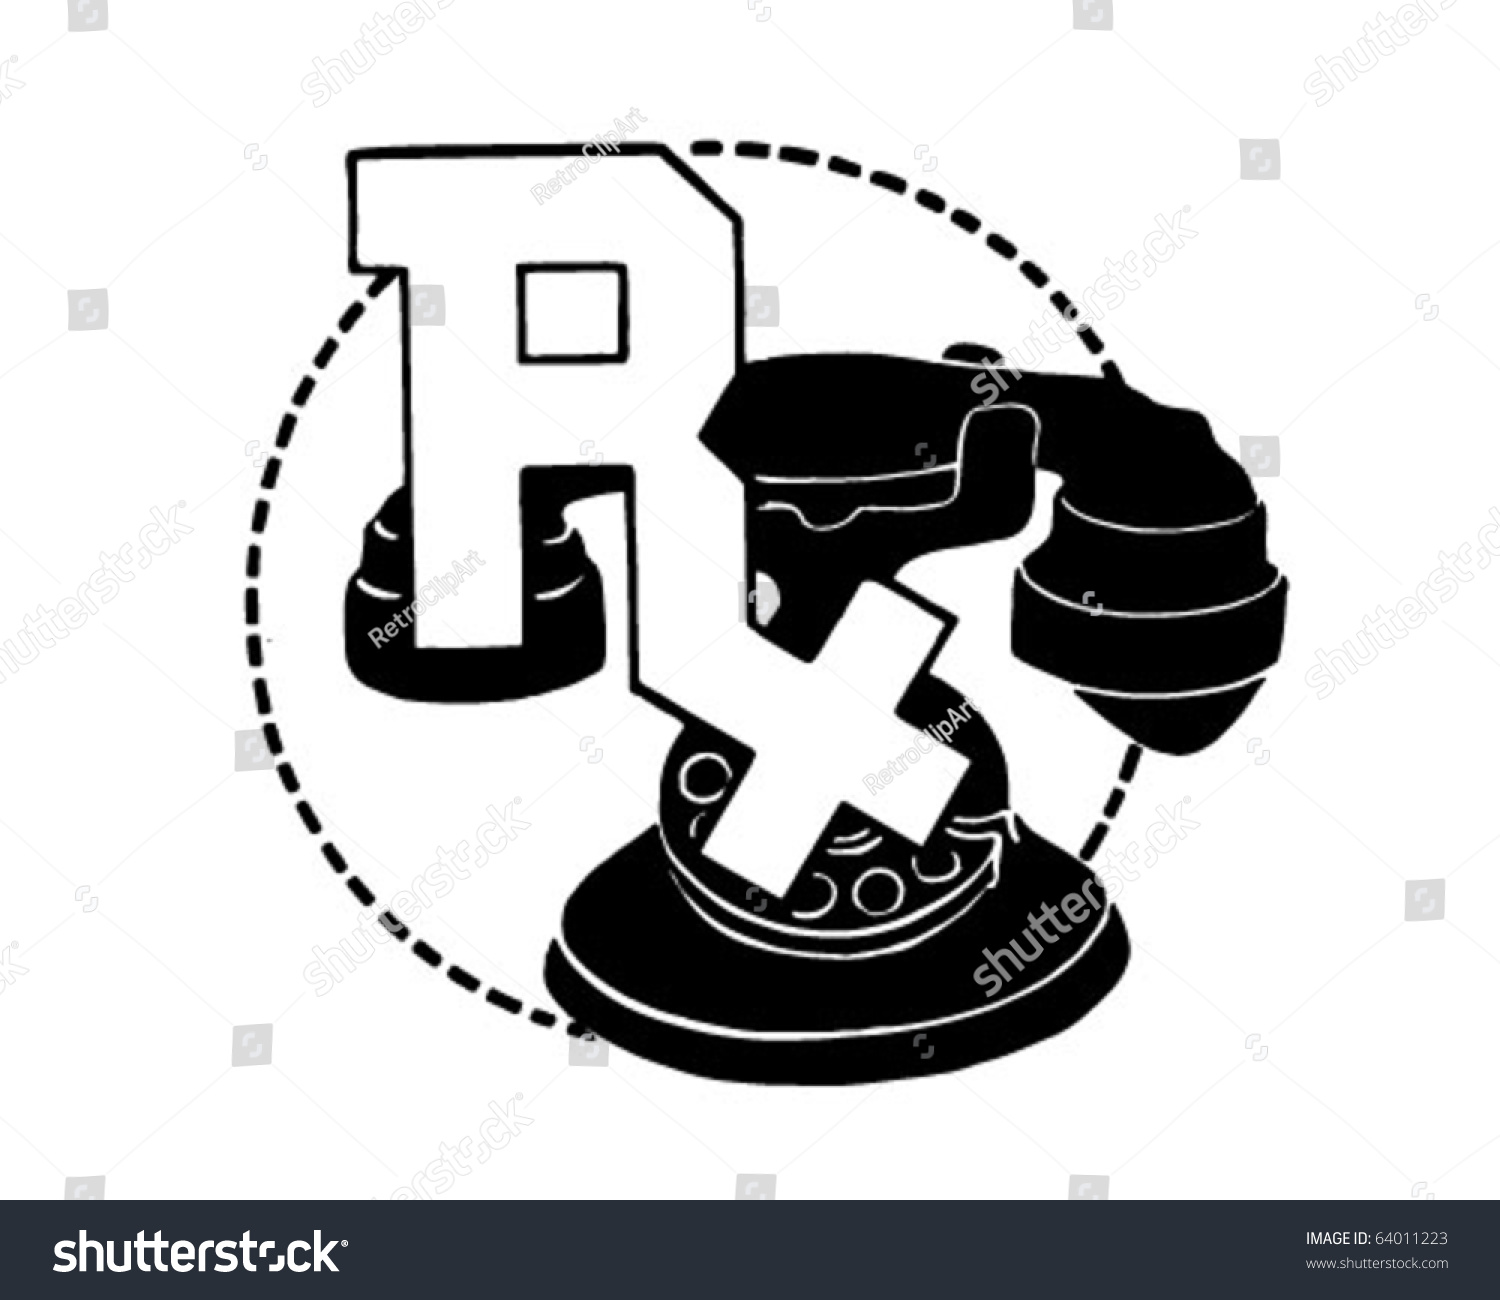 Rx Symbol On Telephone - Retro Clipart Stock Vector Illustration ...